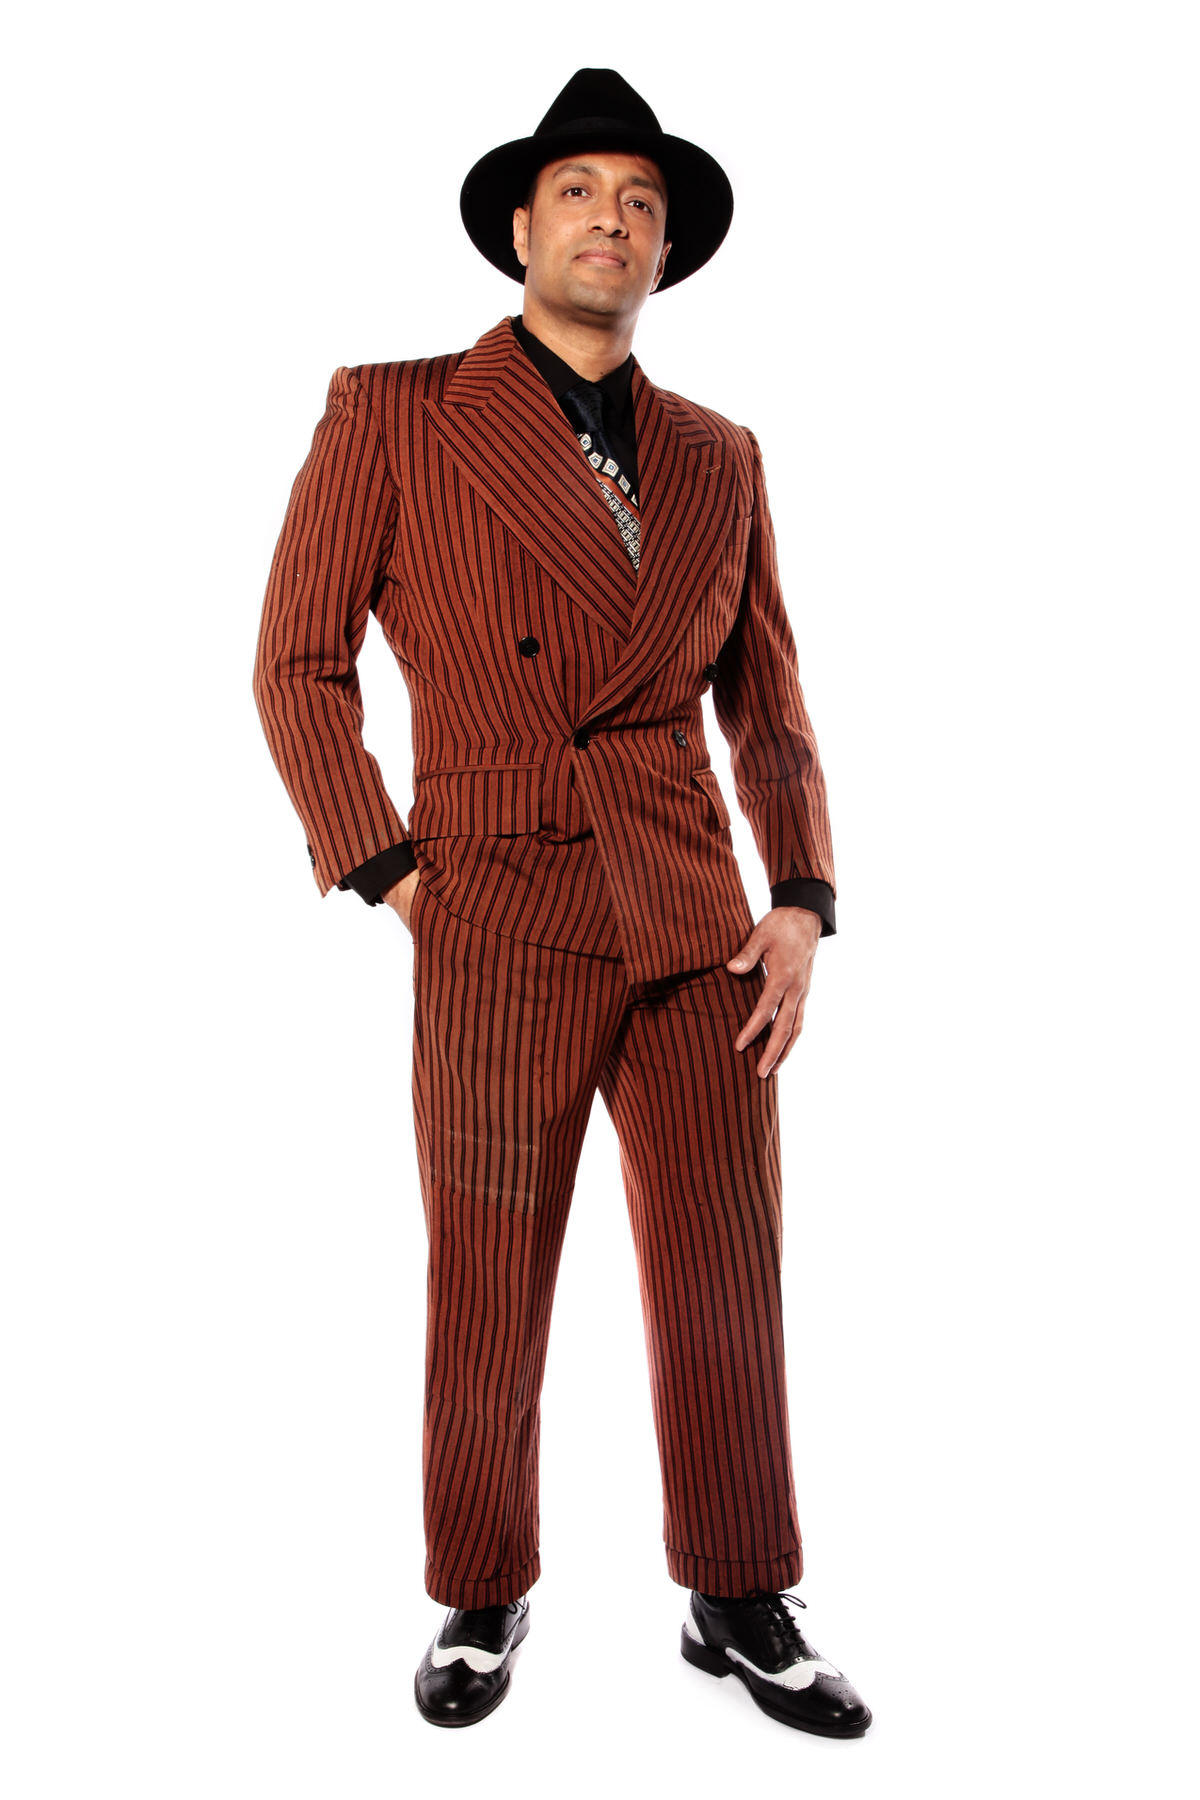 1930s GANGSTER JAZZ DUDE COSTUME W ZOOT-SUIT